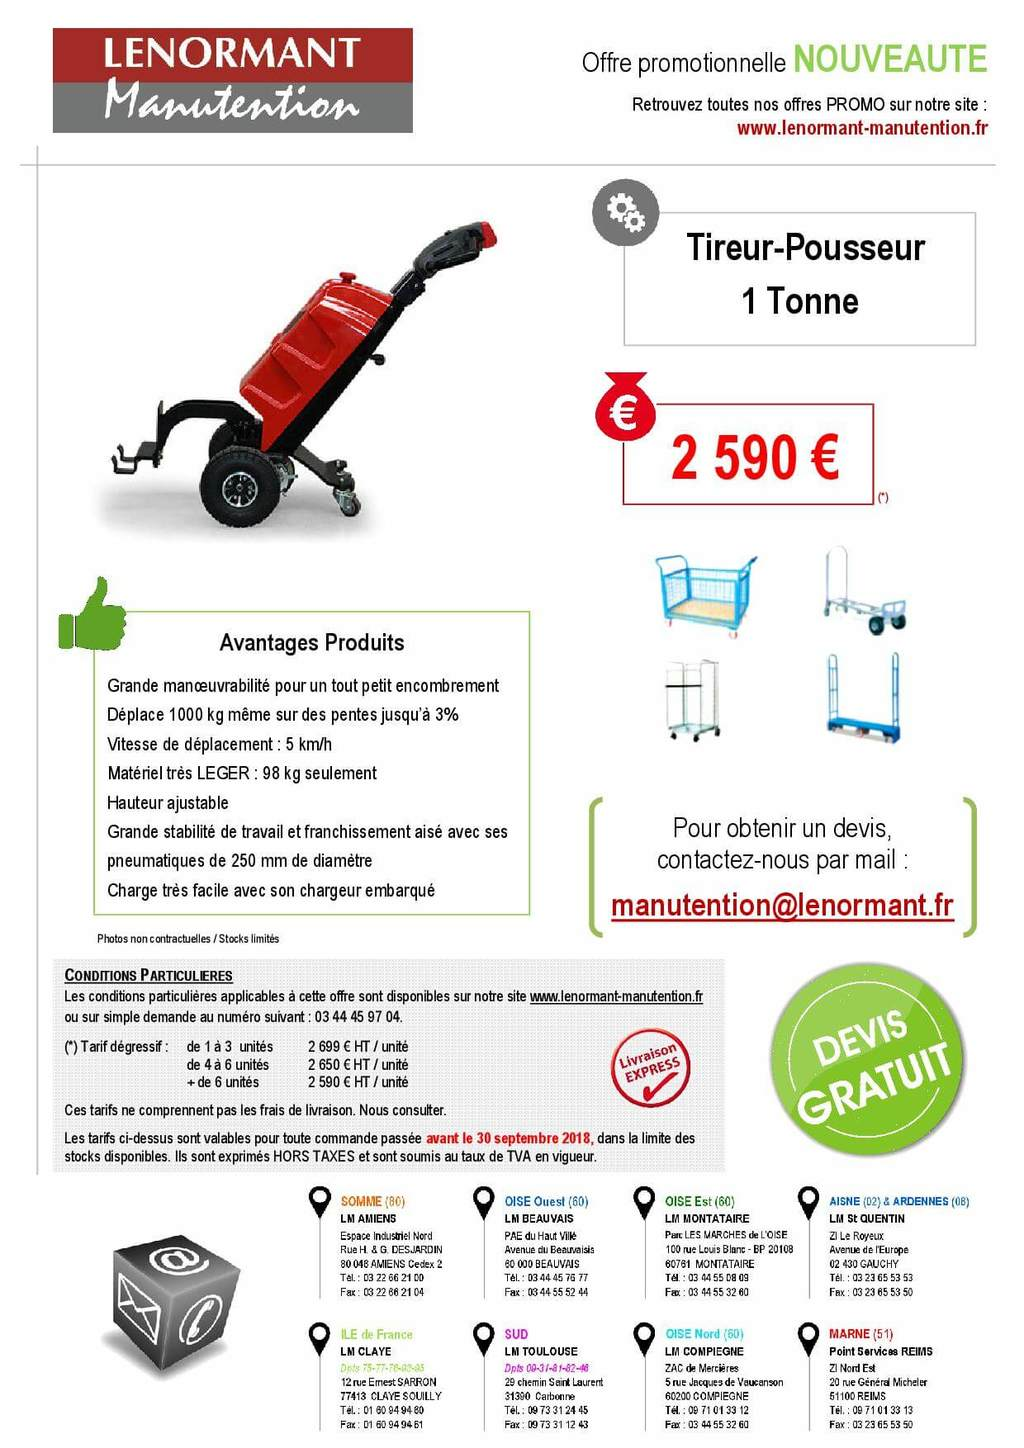 QDD10 Lenormant Manutention tireur-pousseur